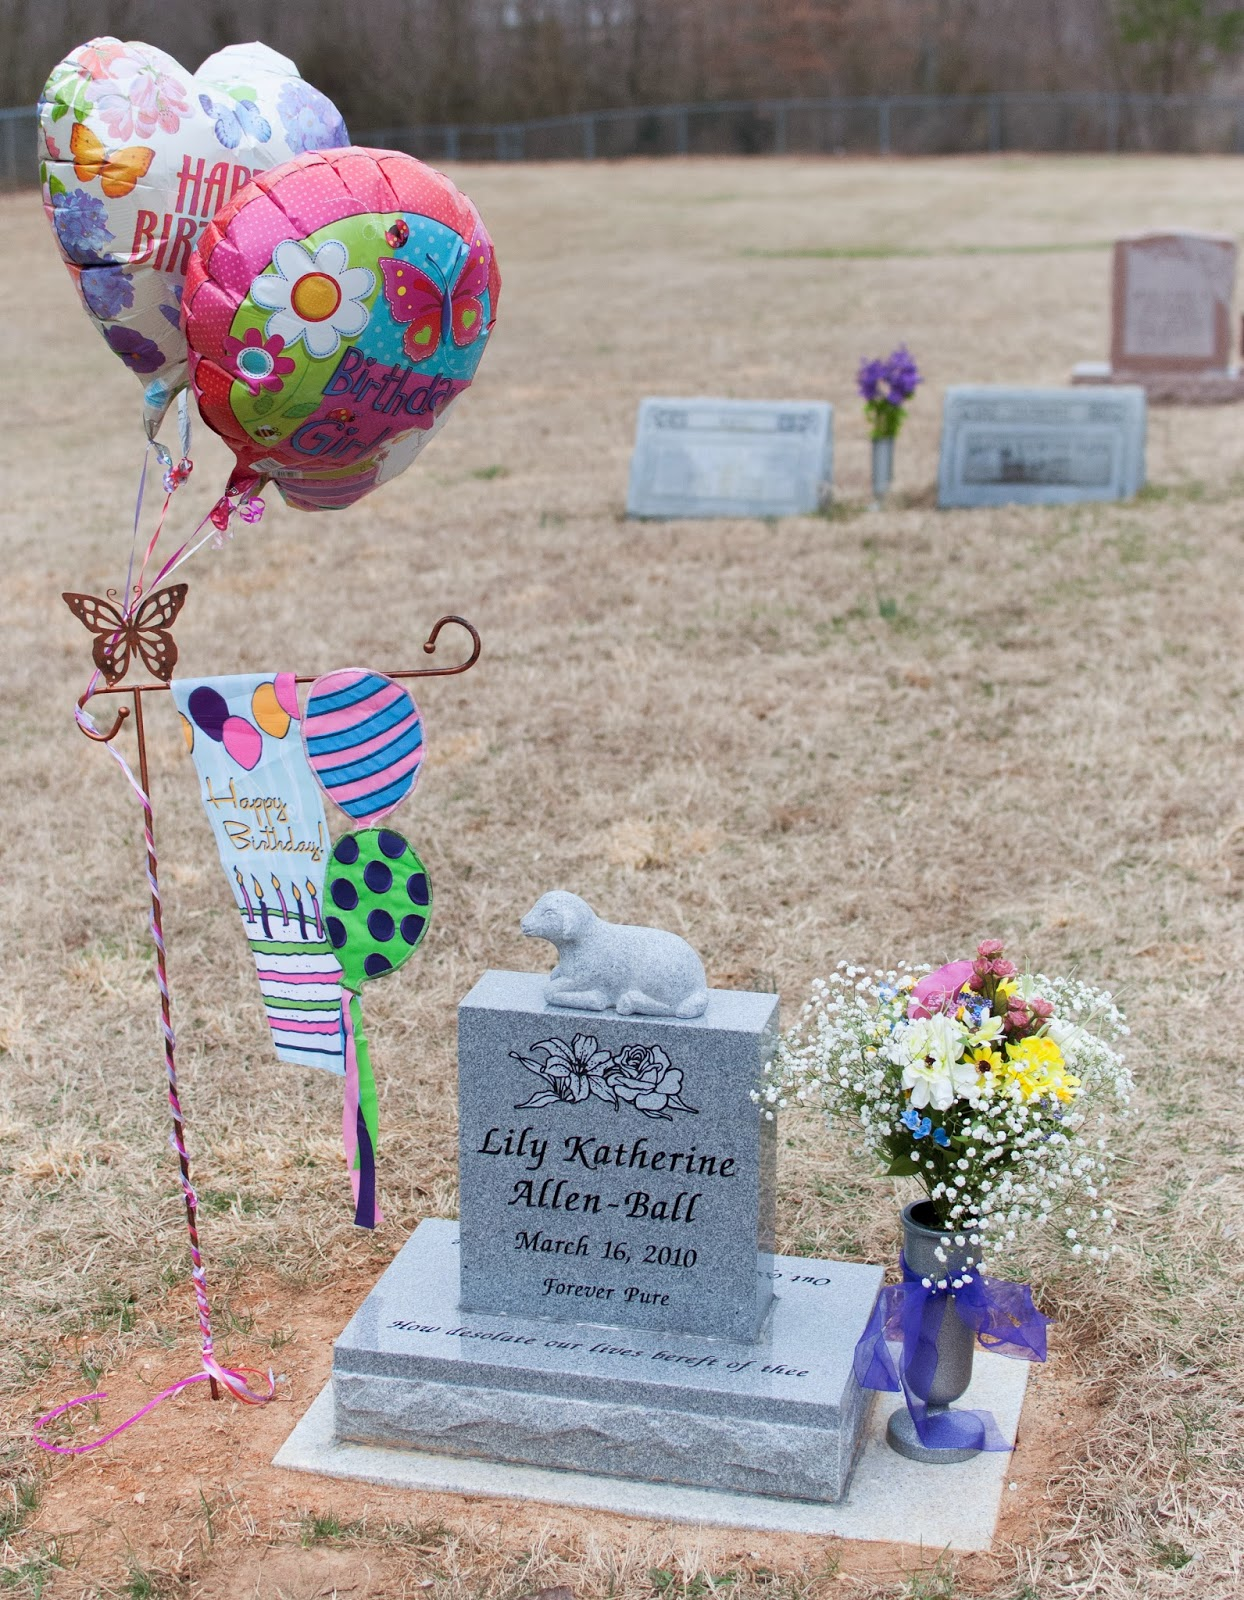 Rose and her lily lilys 4th birthday celebration the four balloons that i got all looked so pretty together the balloon on top left in picture below says birthday girl and has flowers and a butterfly izmirmasajfo